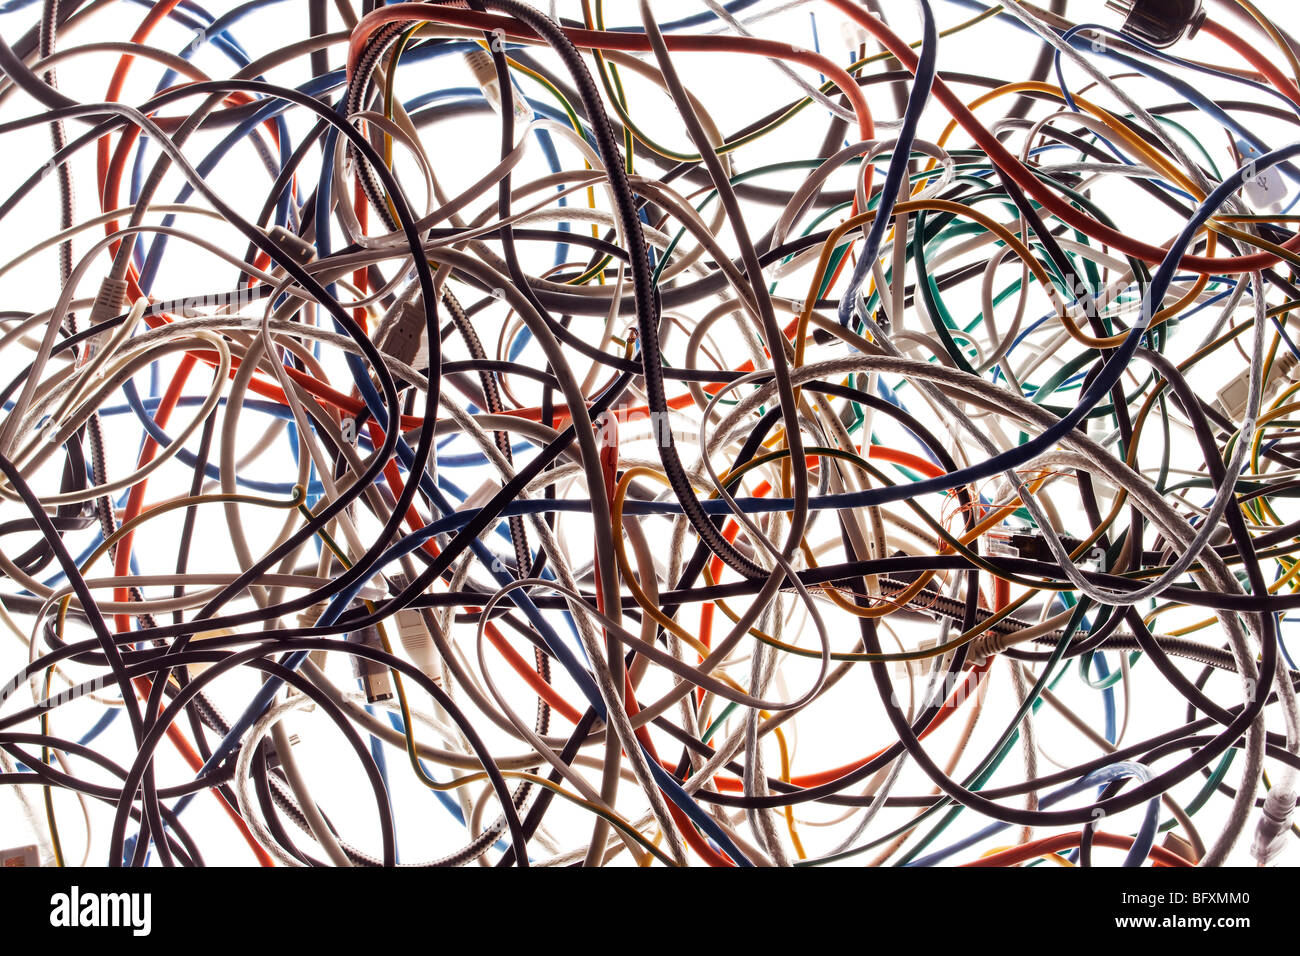 A tangle of colored wires on the ground - Stock Image